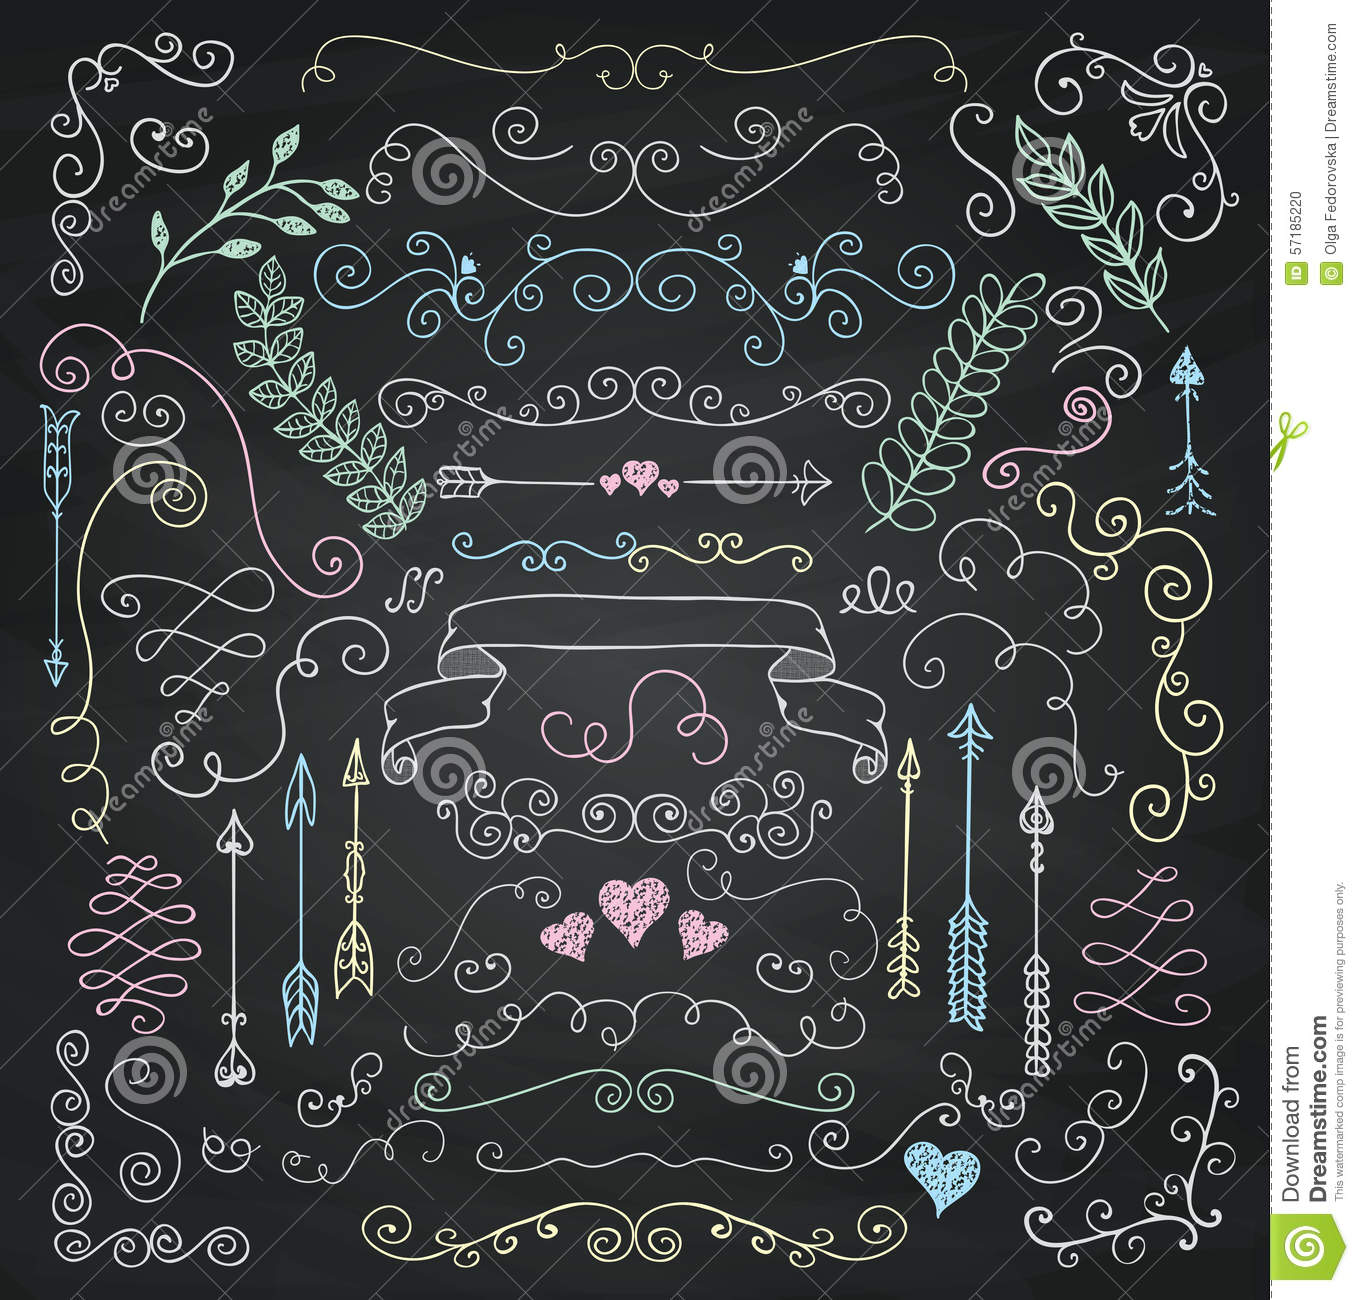 Rustic Scroll Design: Vector Chalk Drawing Rustic Floral Design Elements Stock